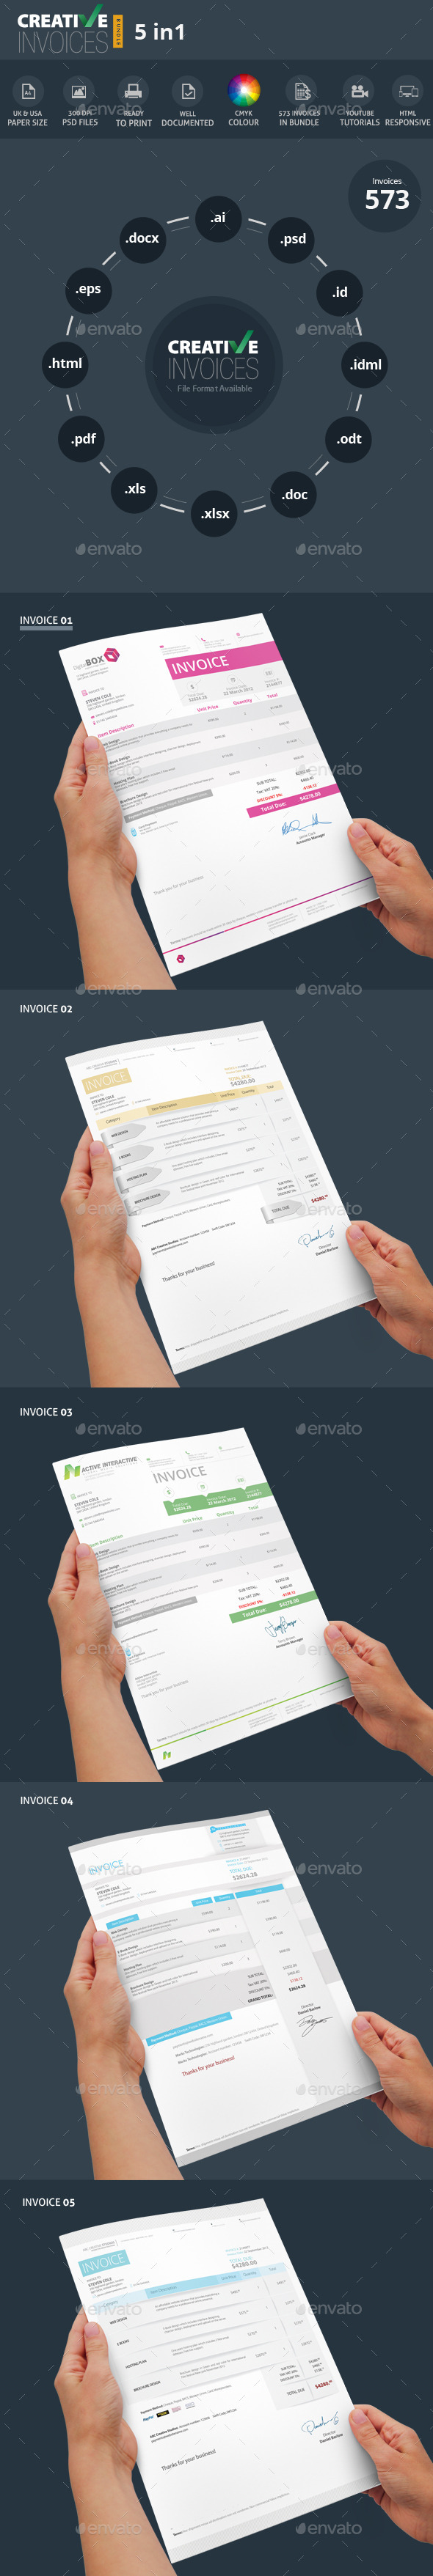 GraphicRiver Invoices Bundle 5 in 1 8894002